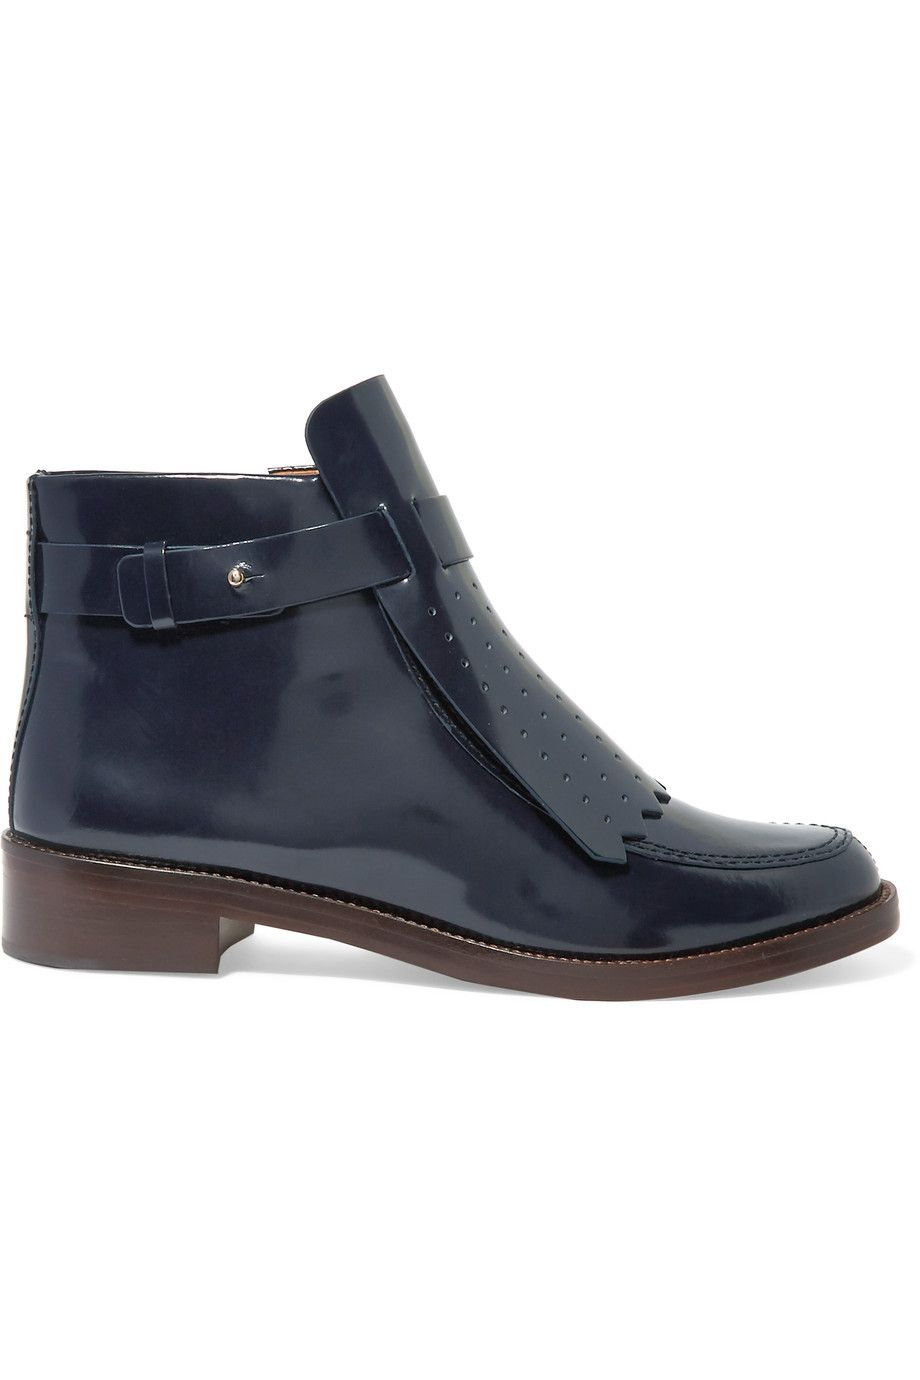 6887e1ff225807 12345 4b630 14574  official store tory burch hyde perforated glossed leather  ankle boots. toryburch shoes boots 9d7ab 5c949